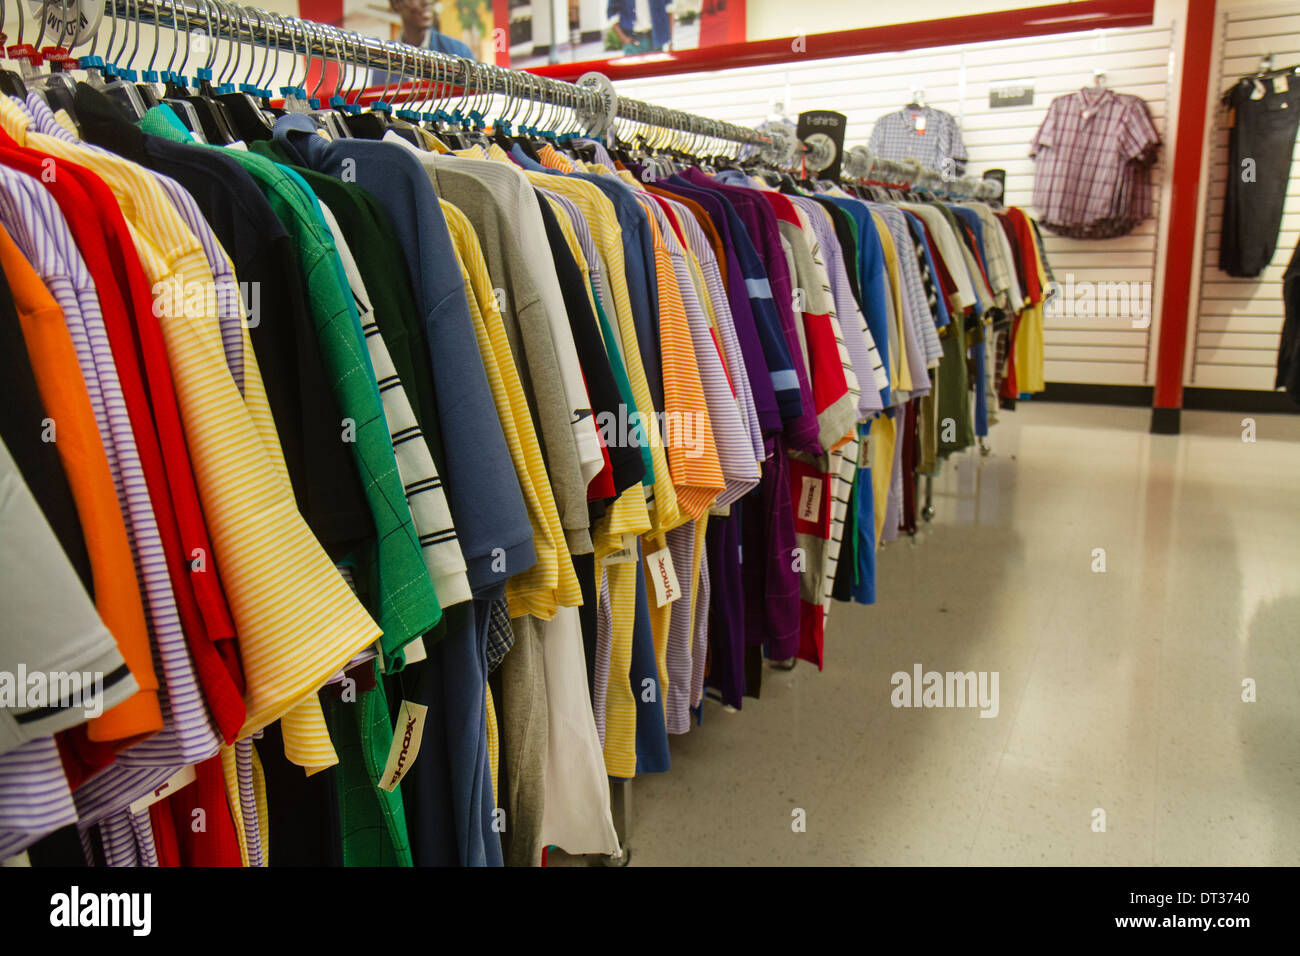 Mens Shirts Stockfotos & Mens Shirts Bilder - Alamy